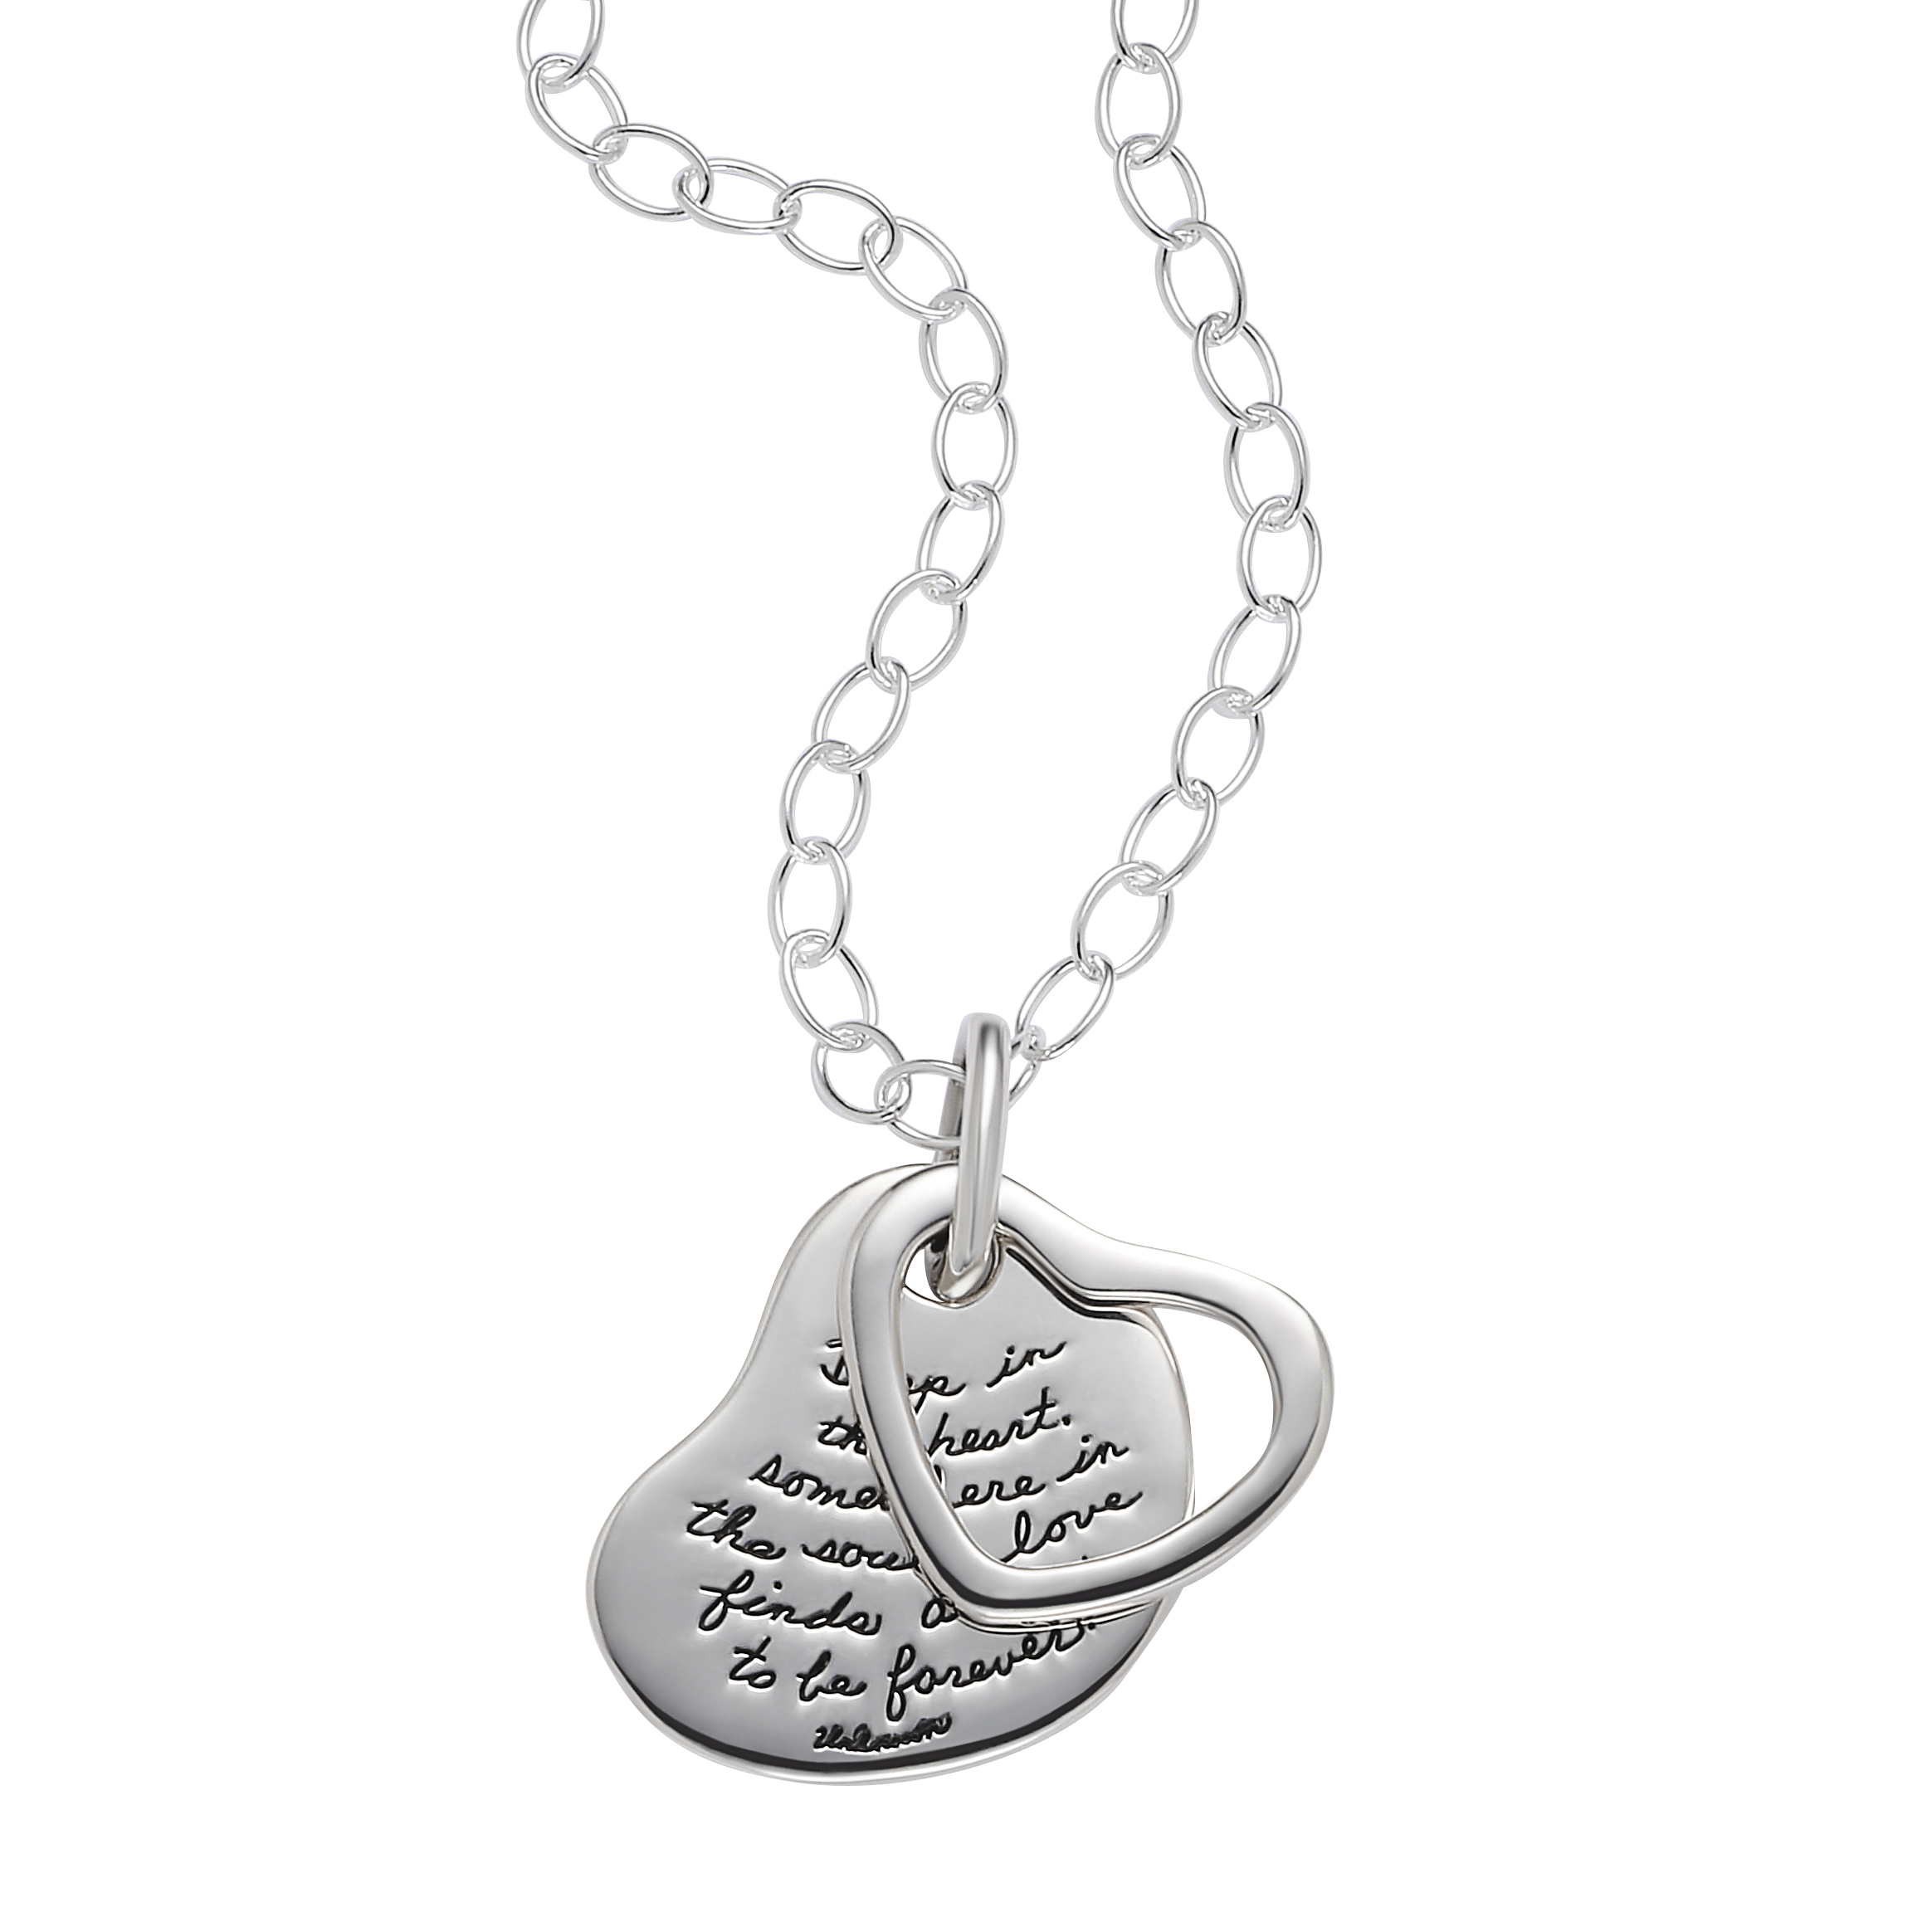 Sterling silver heart pendant with a smaller heart overlay with center cutout to show inscribed quote. Quote reads: Deep in the heart, somewhere in the soul, love finds a way to be forever.